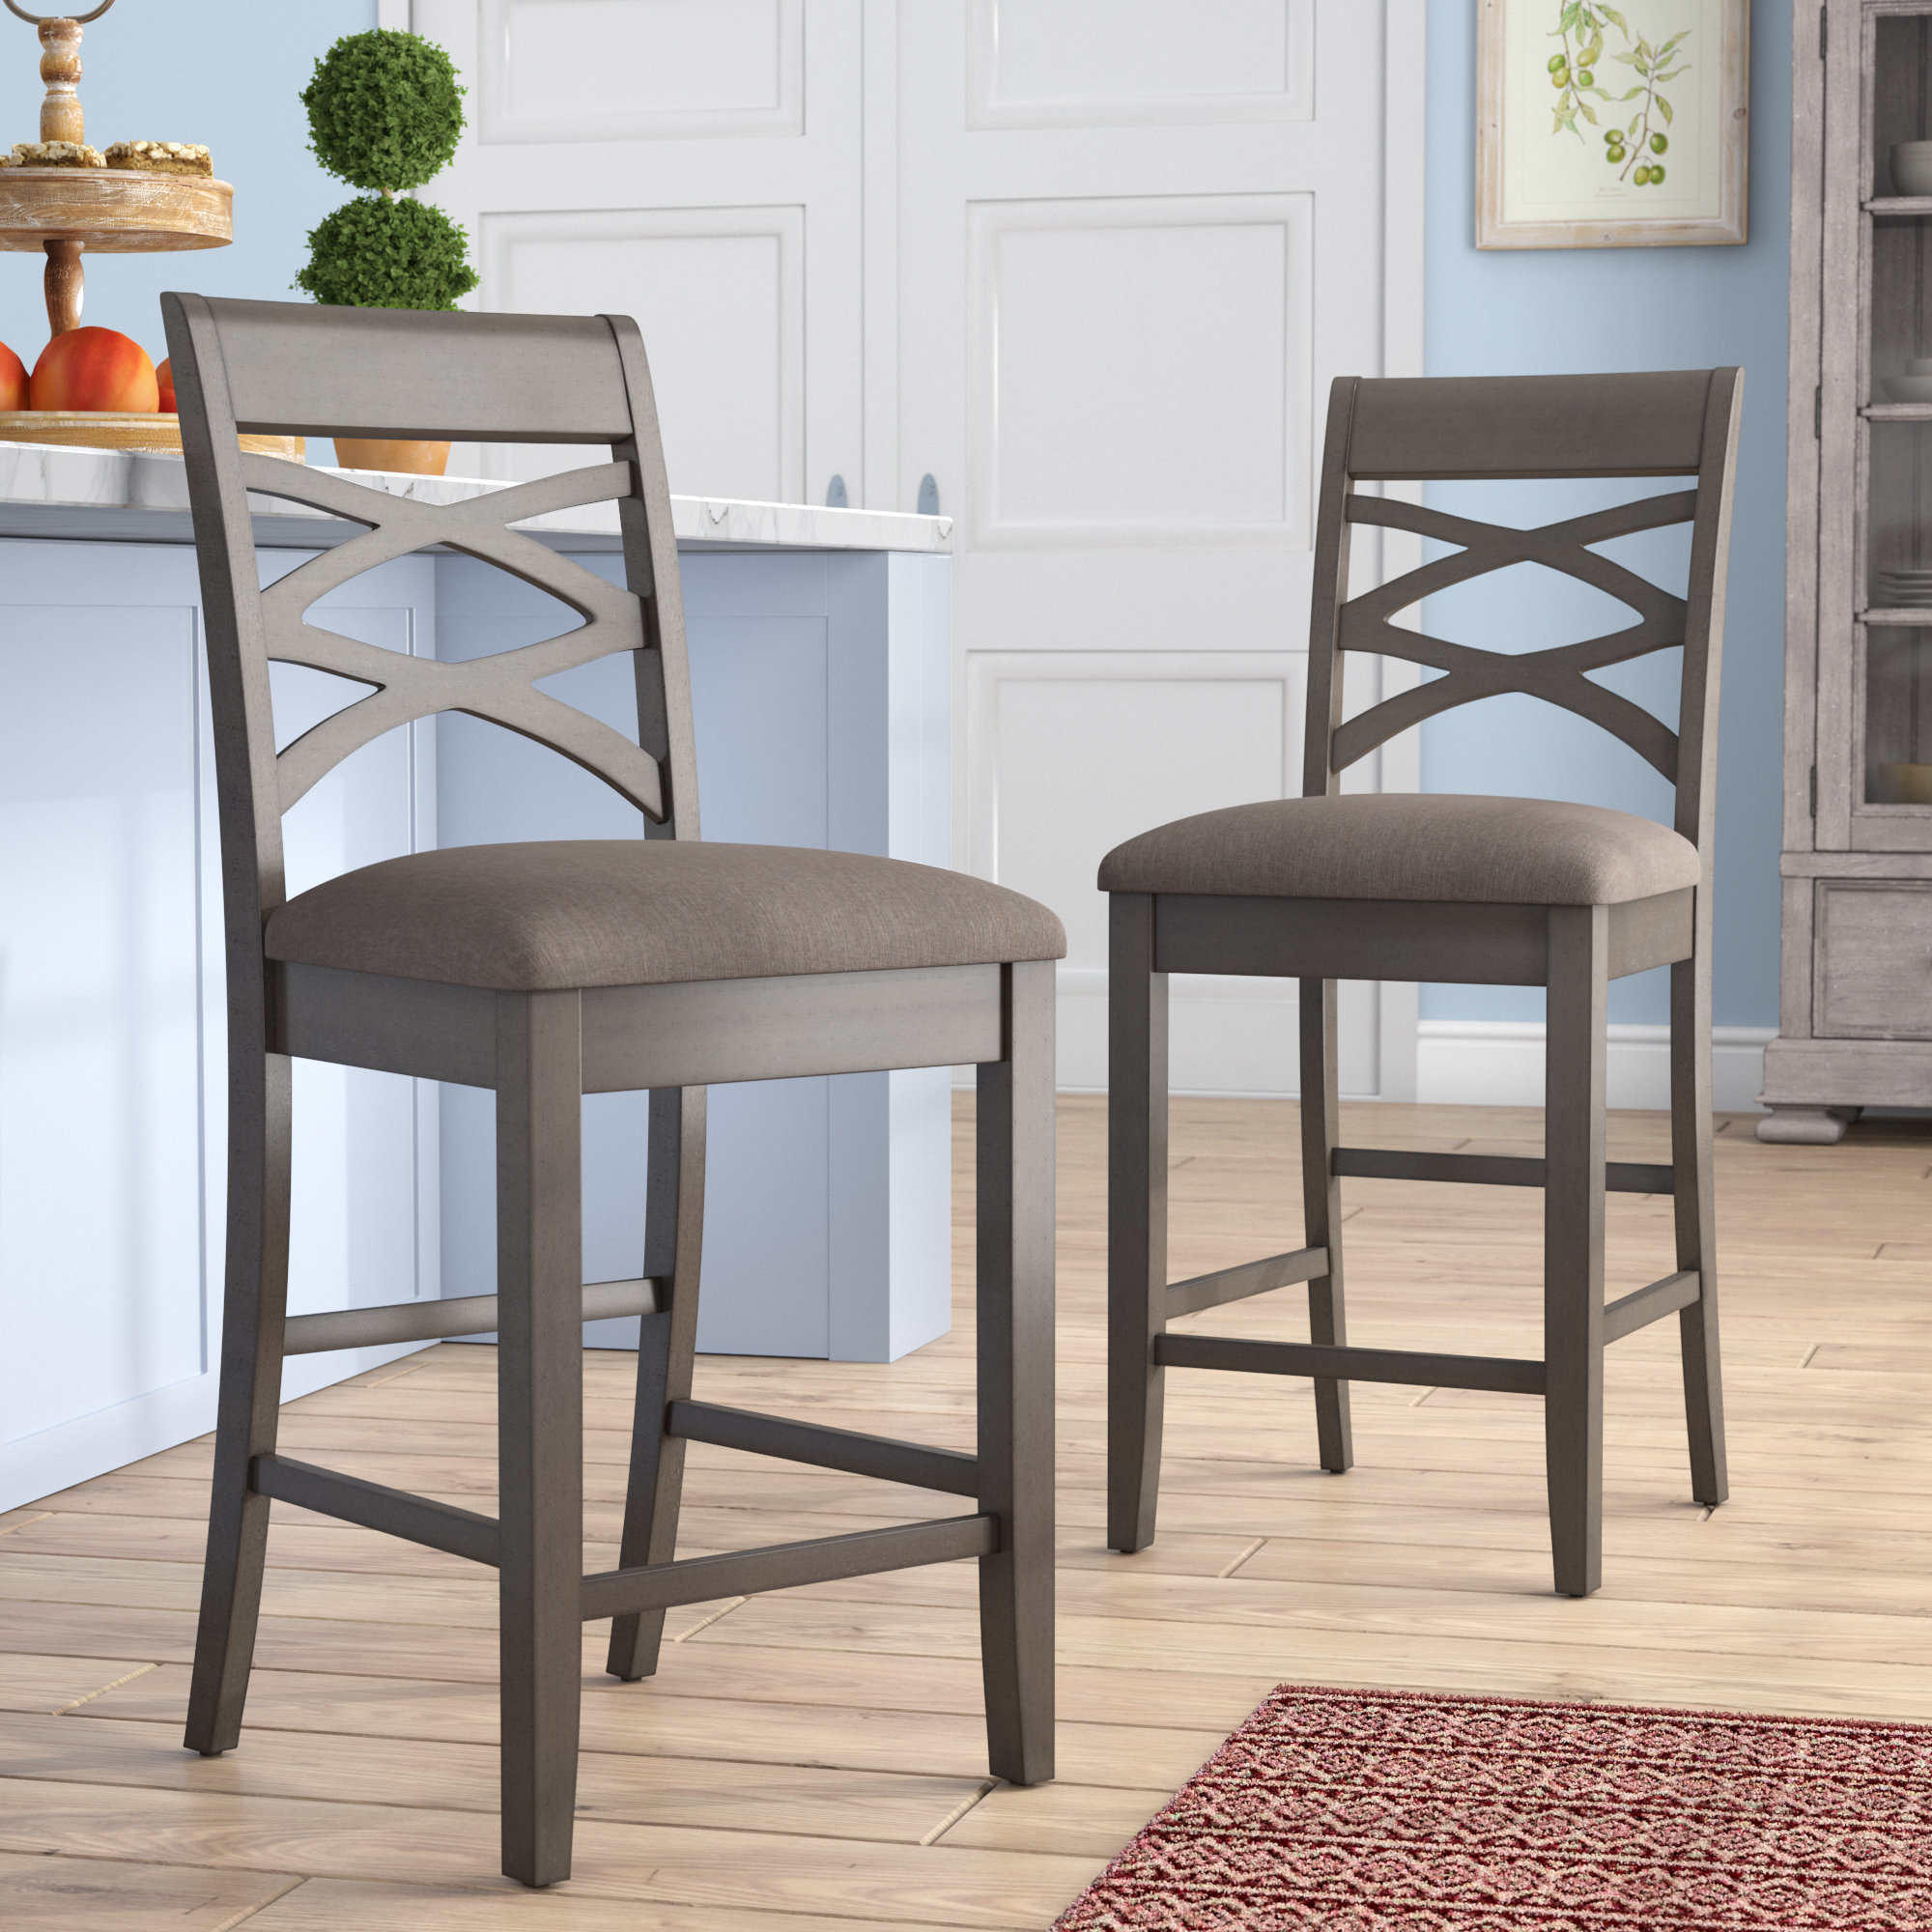 "Gracie Oaks Jeanine Wood Double Cross Back 24"" Bar Stool & Reviews Regarding Bailey Angled Track Arm Swivel Gliders (Image 8 of 20)"